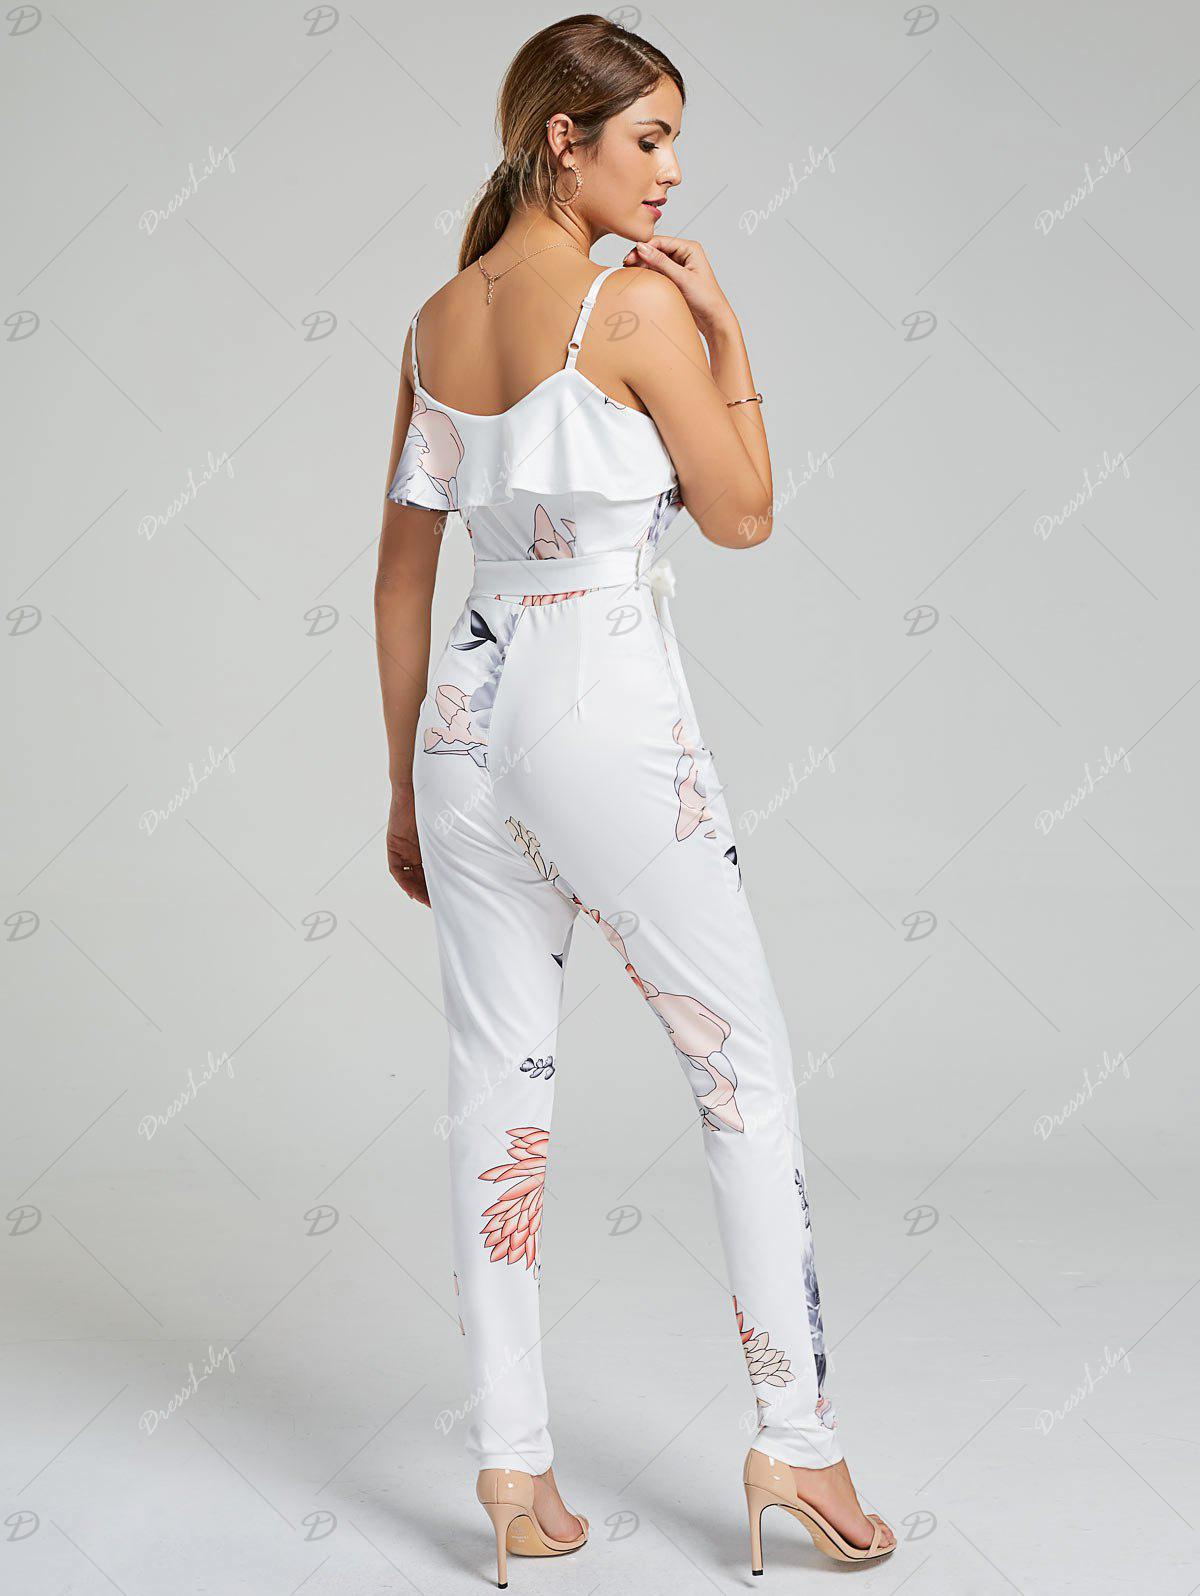 Ruffle Floral Belted Slip Jumpsuit - WHITE M